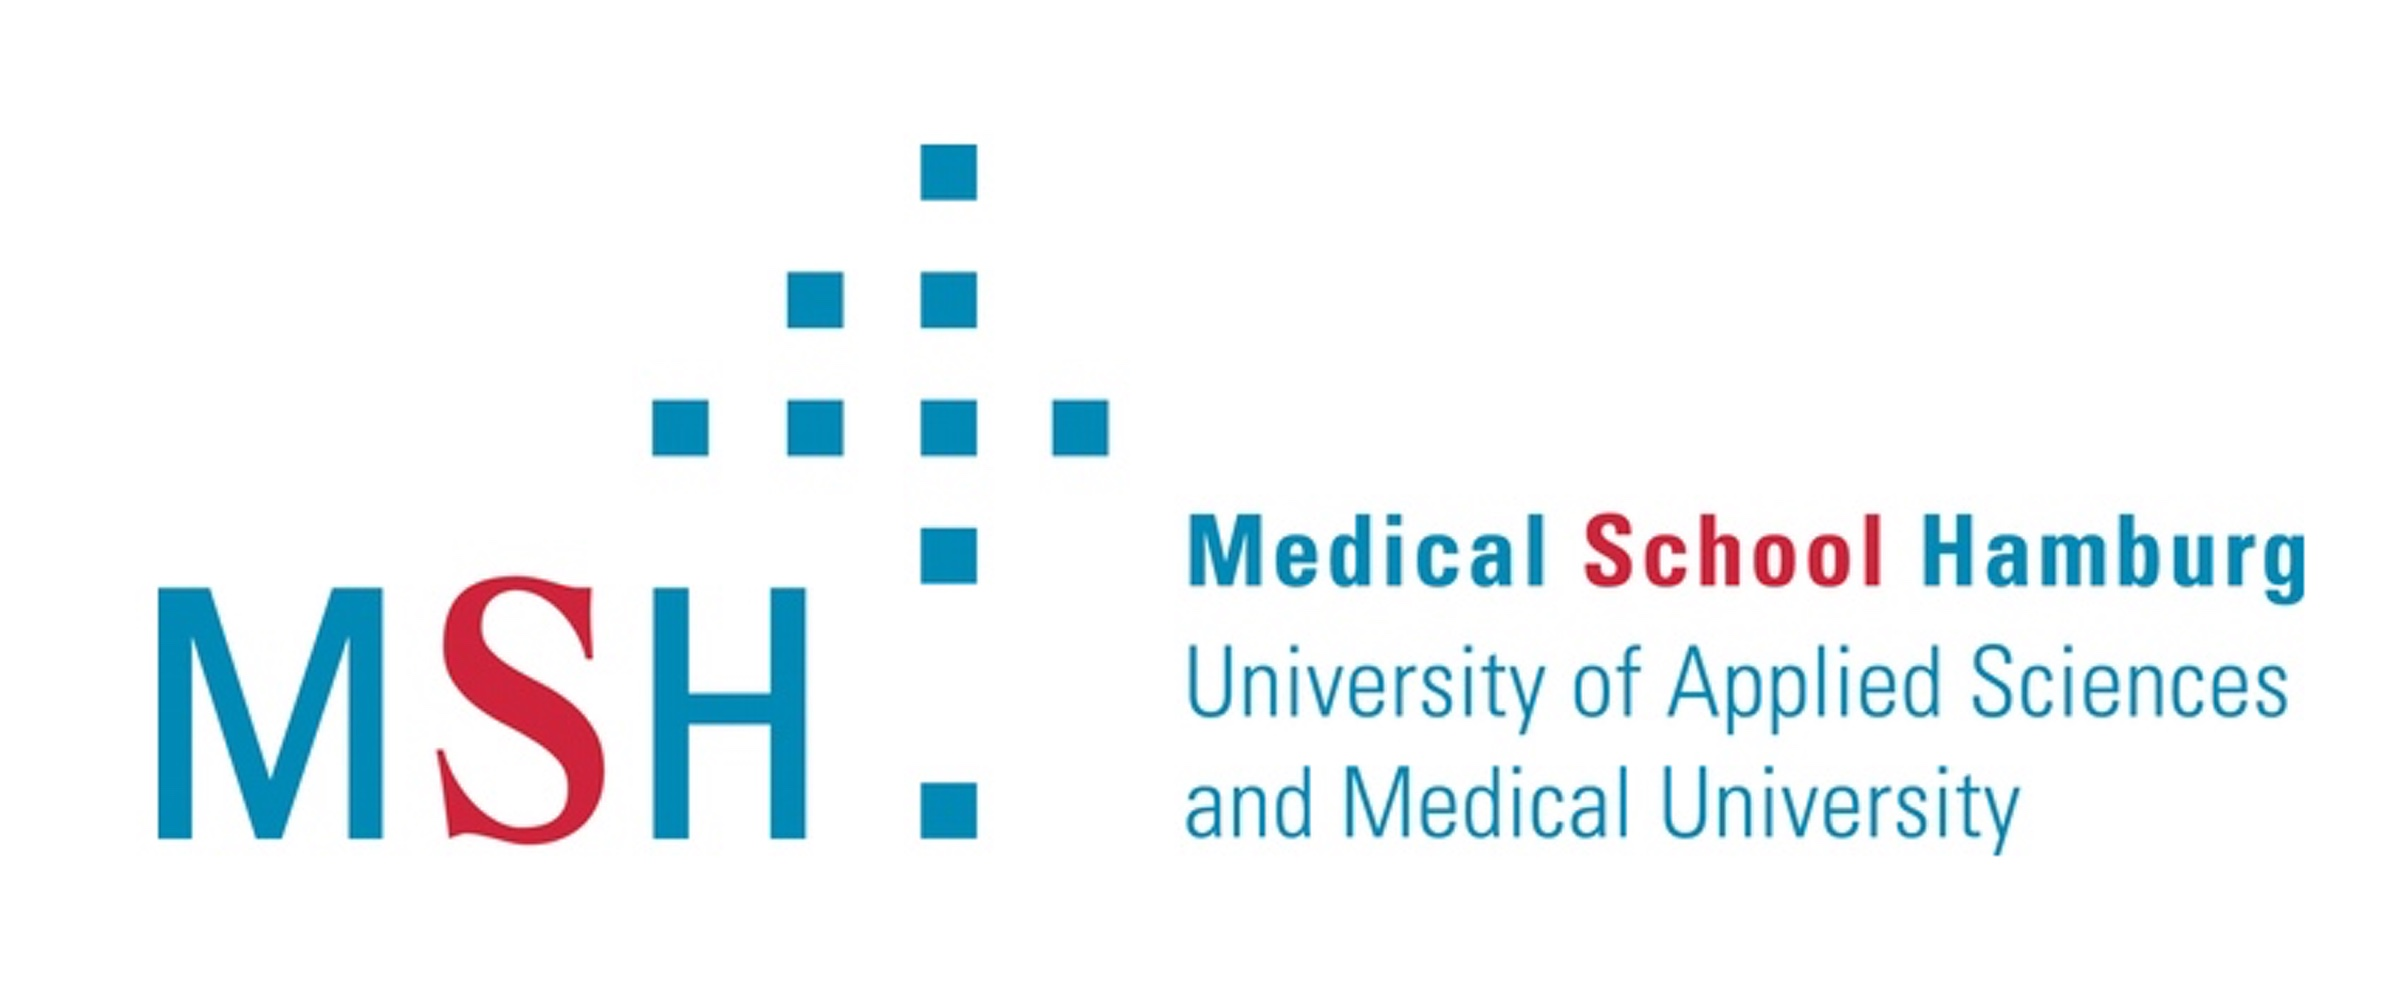 Medical School Hamburg